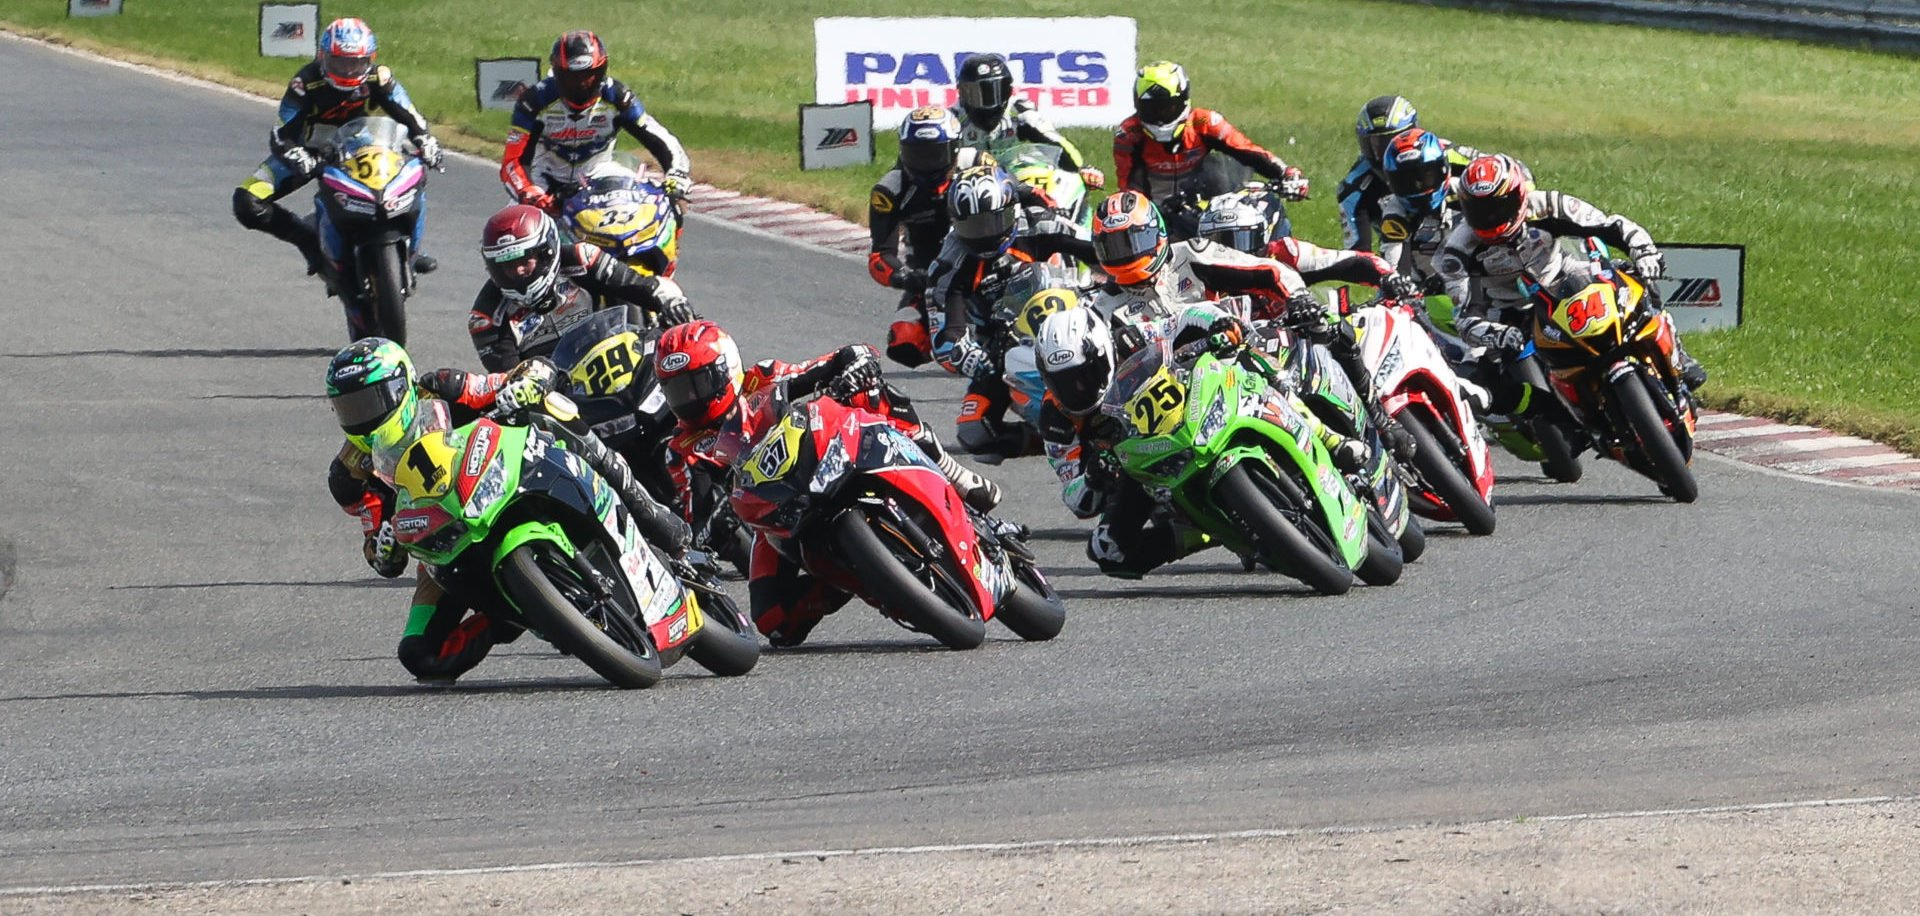 Rocco Landers (1) leads the field into Turn One at the start of Junior Cup Race One. Photo by Brian J. Nelson, courtesy MotoAmerica.